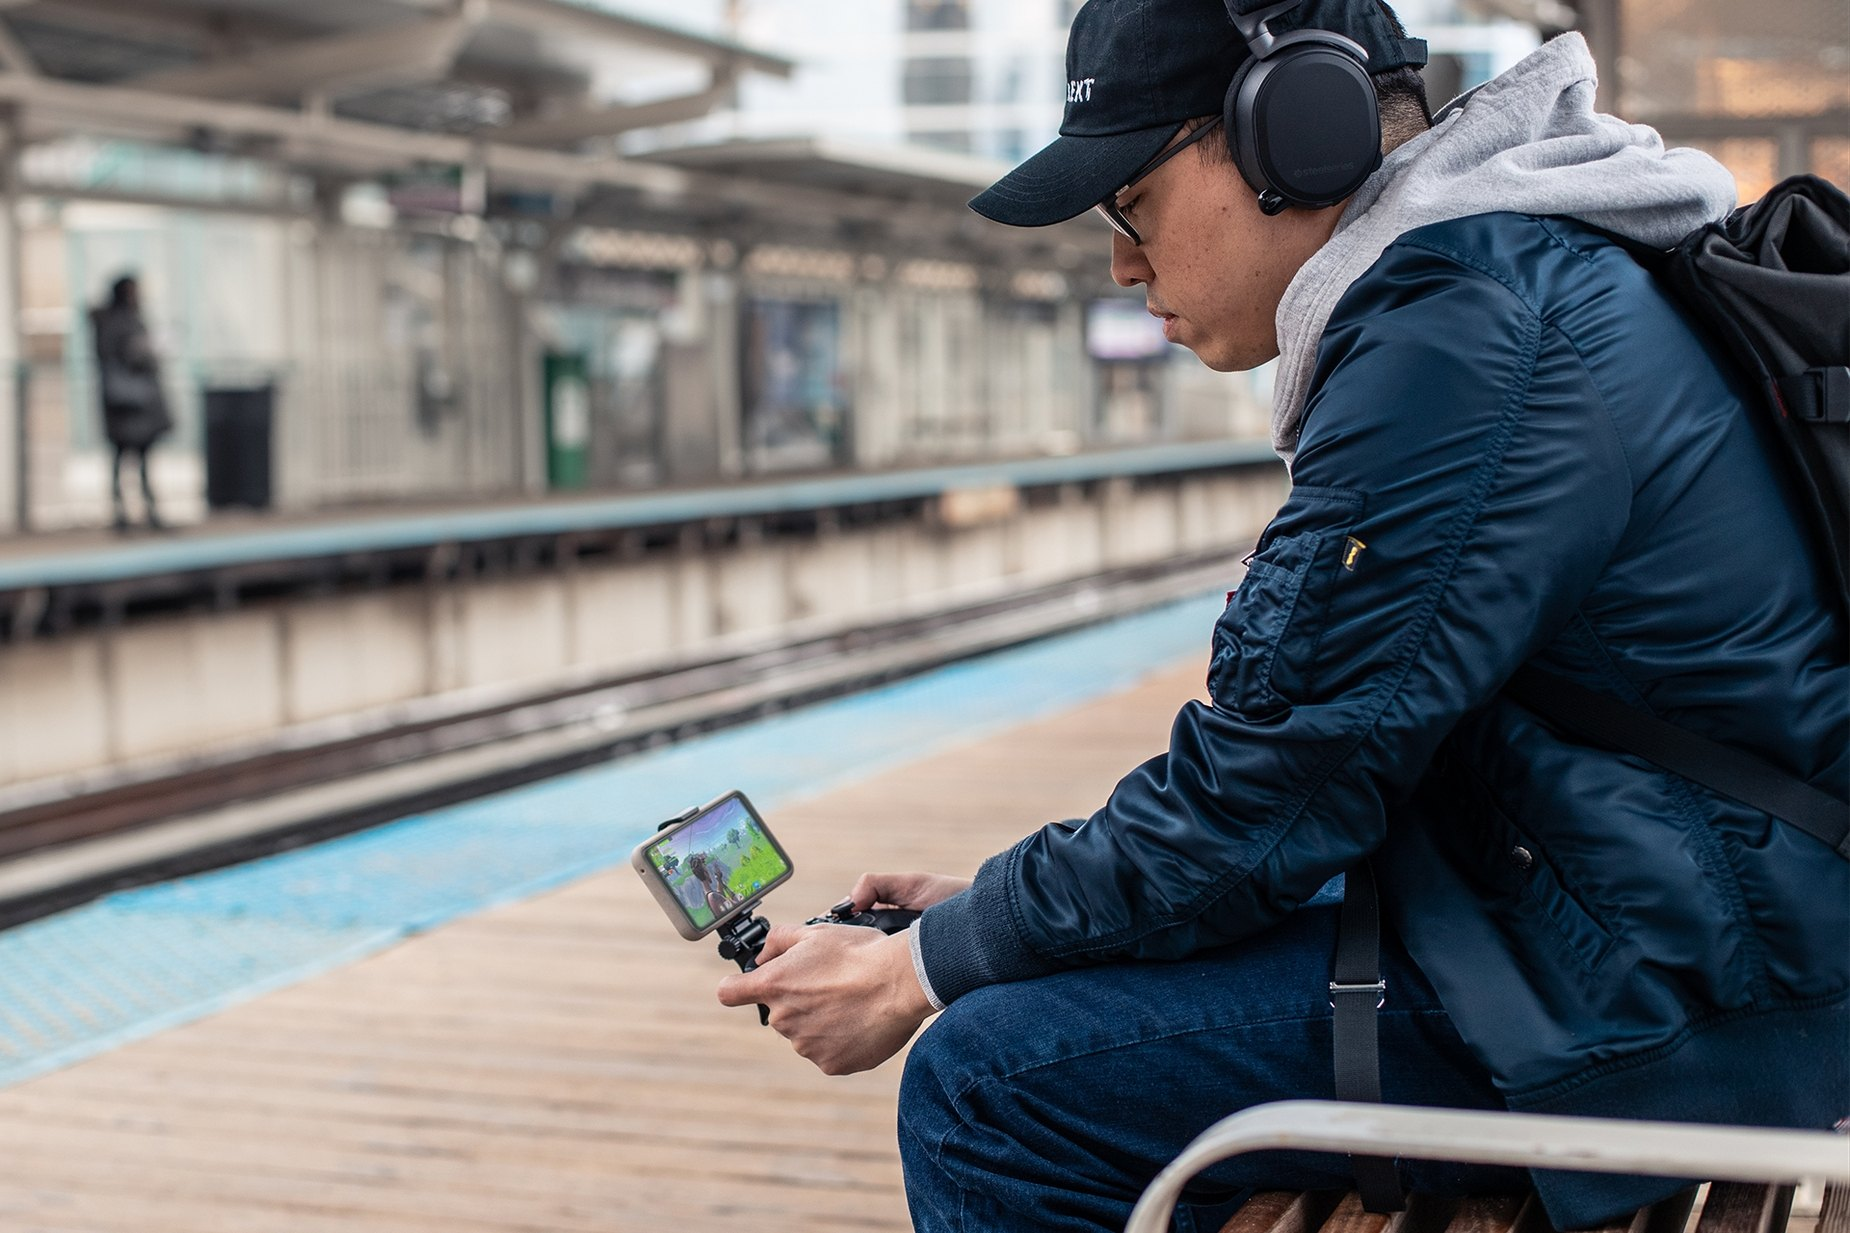 Man sitting on a bench wearing SteelSeries headphones playing a mobile game using a SteelSeries controller and SmartGrip accessory